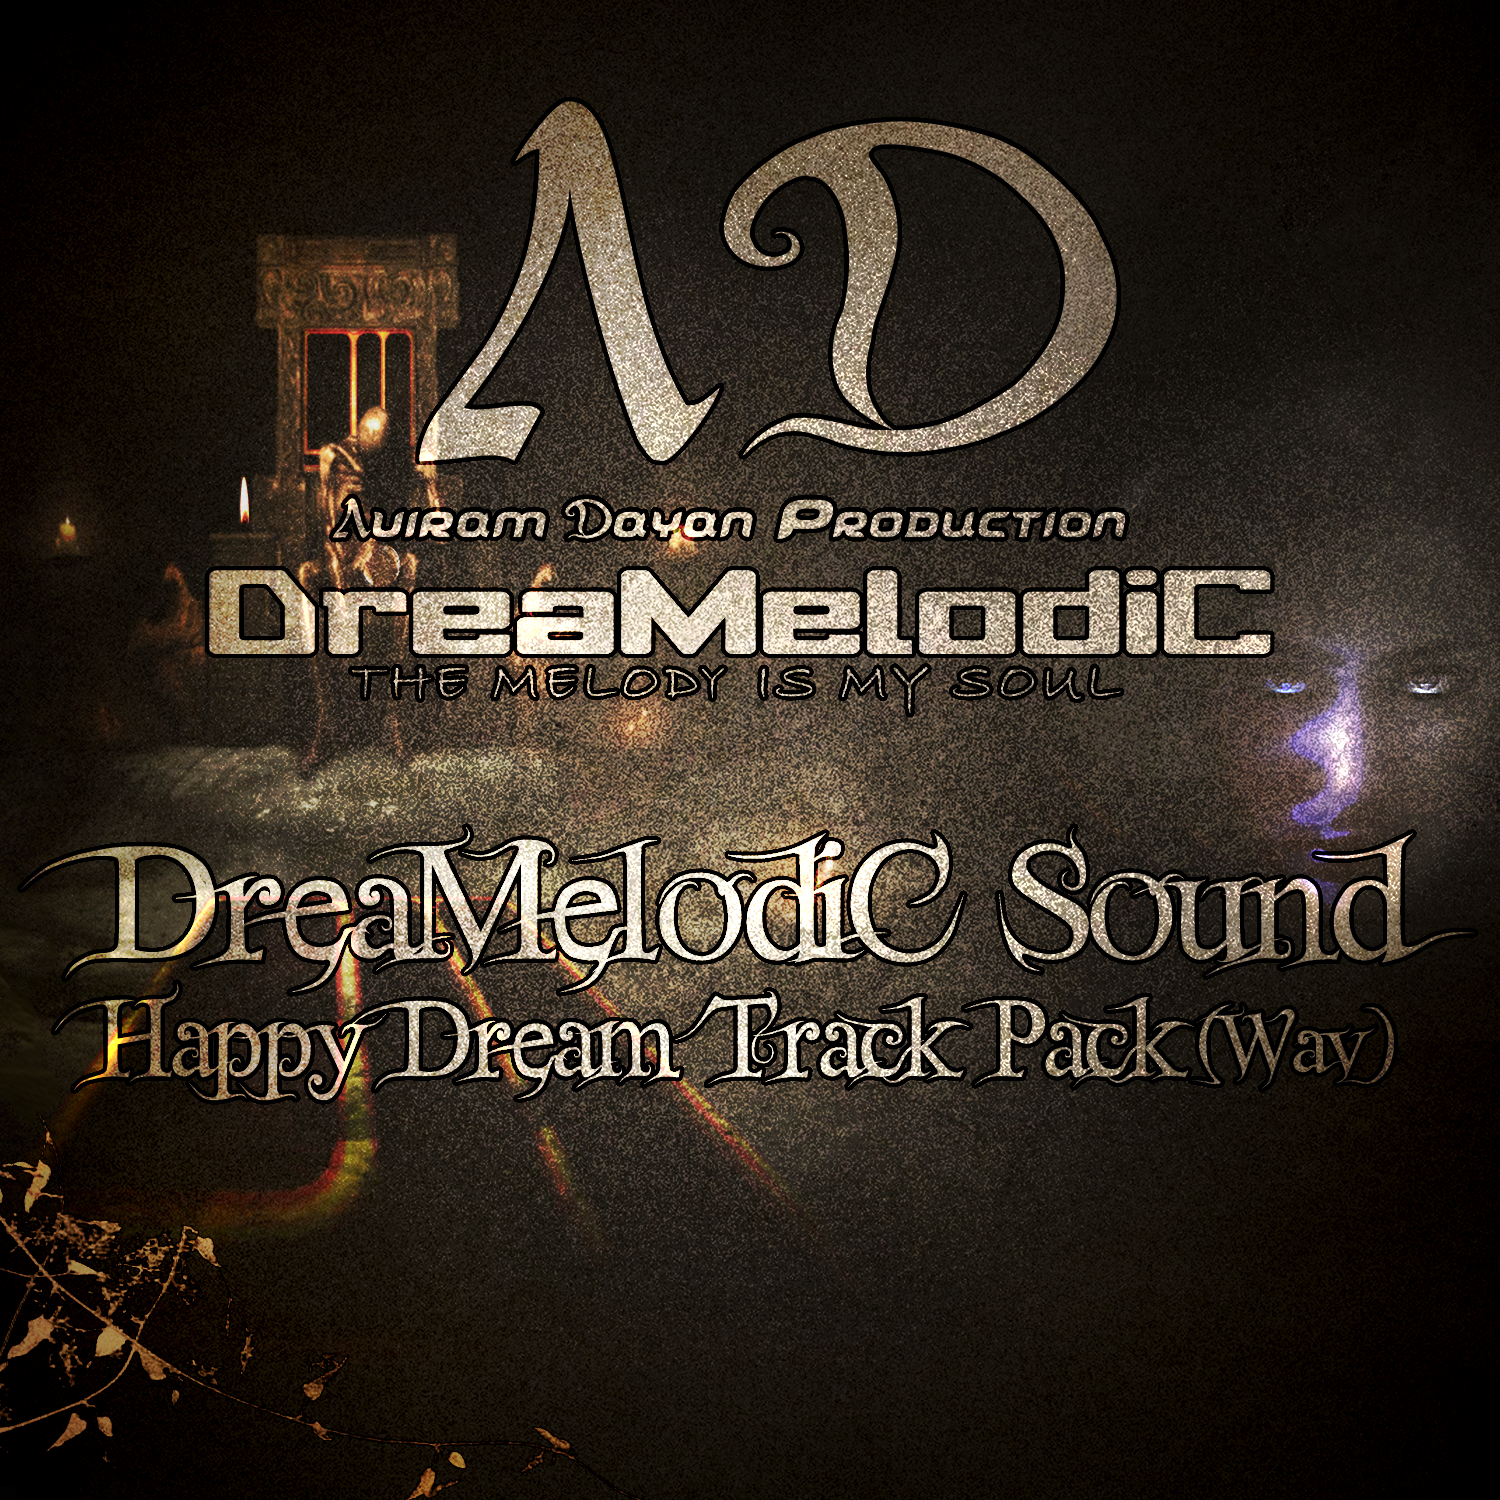 Happy Dream Track Pack COVER